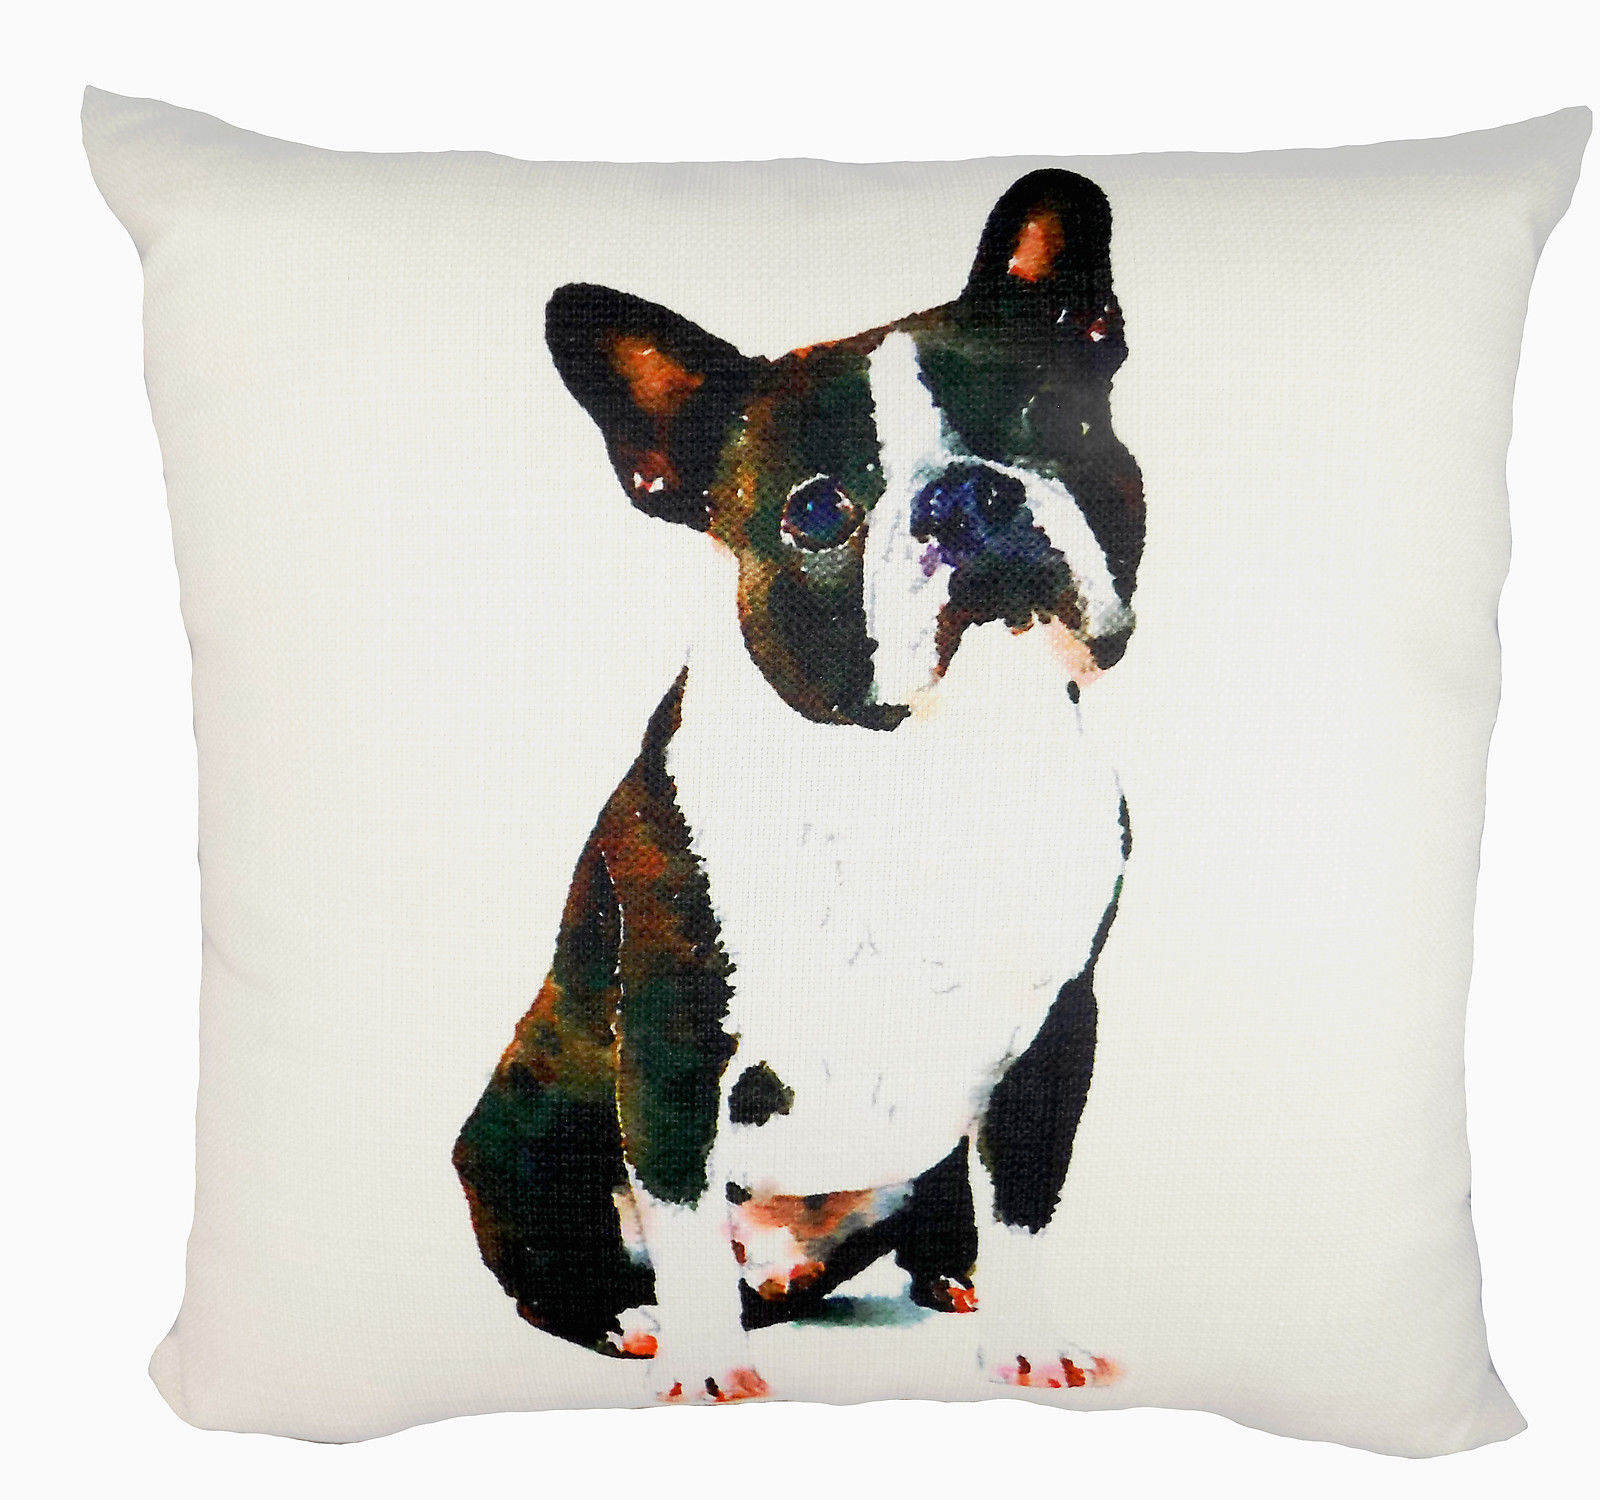 "The Little Birdie Boston Terrier K9 16"" x 16"" Creative Square Pillow Made in USA"